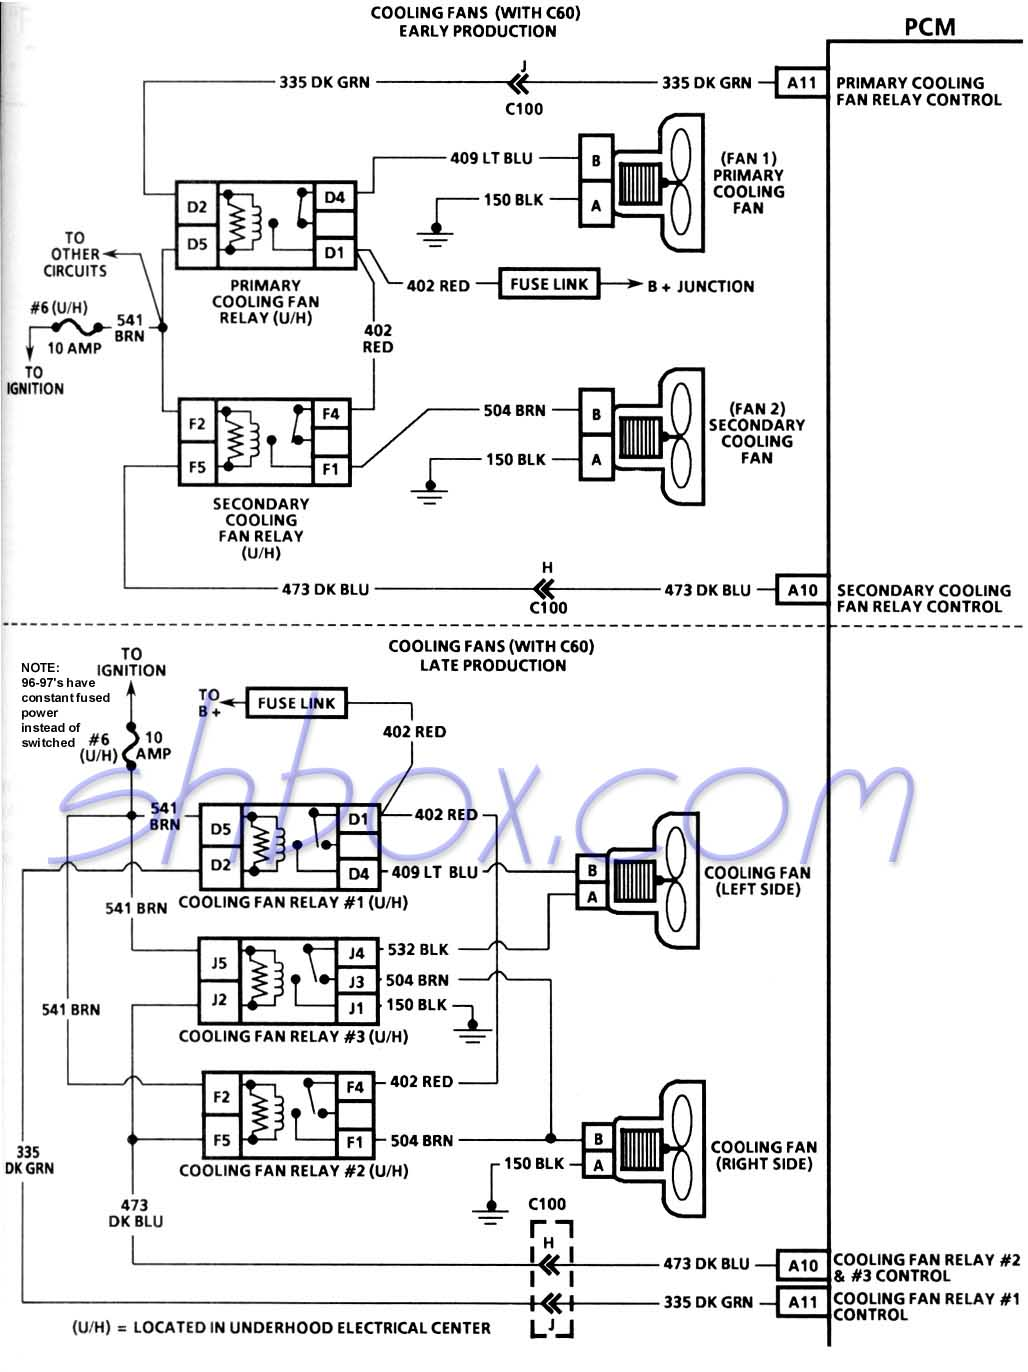 Diagrams795706 wiring diagram for 4 pin trailer plug trailer trailer wiring diagram 4 pin flat nilzanet wiring diagram for 4 pin trailer plug sciox Image collections